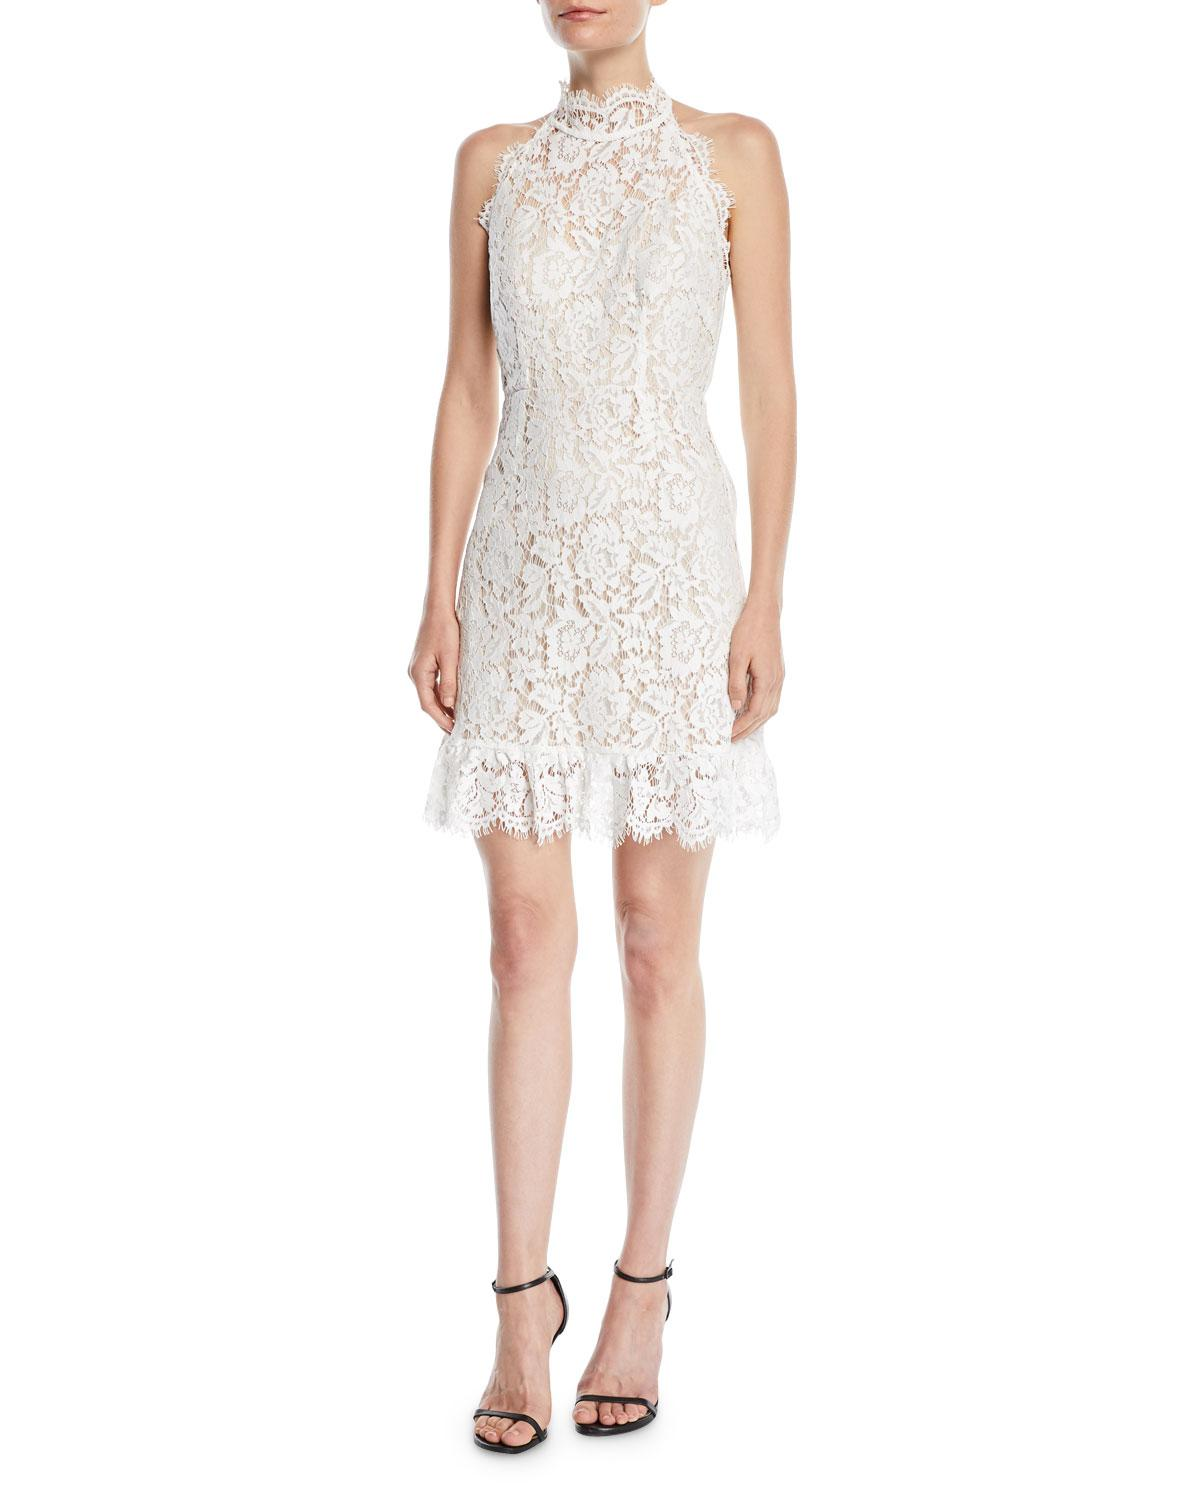 5b344e1d76147c Lyst - Aijek Halter Mini Dress In Lace in White